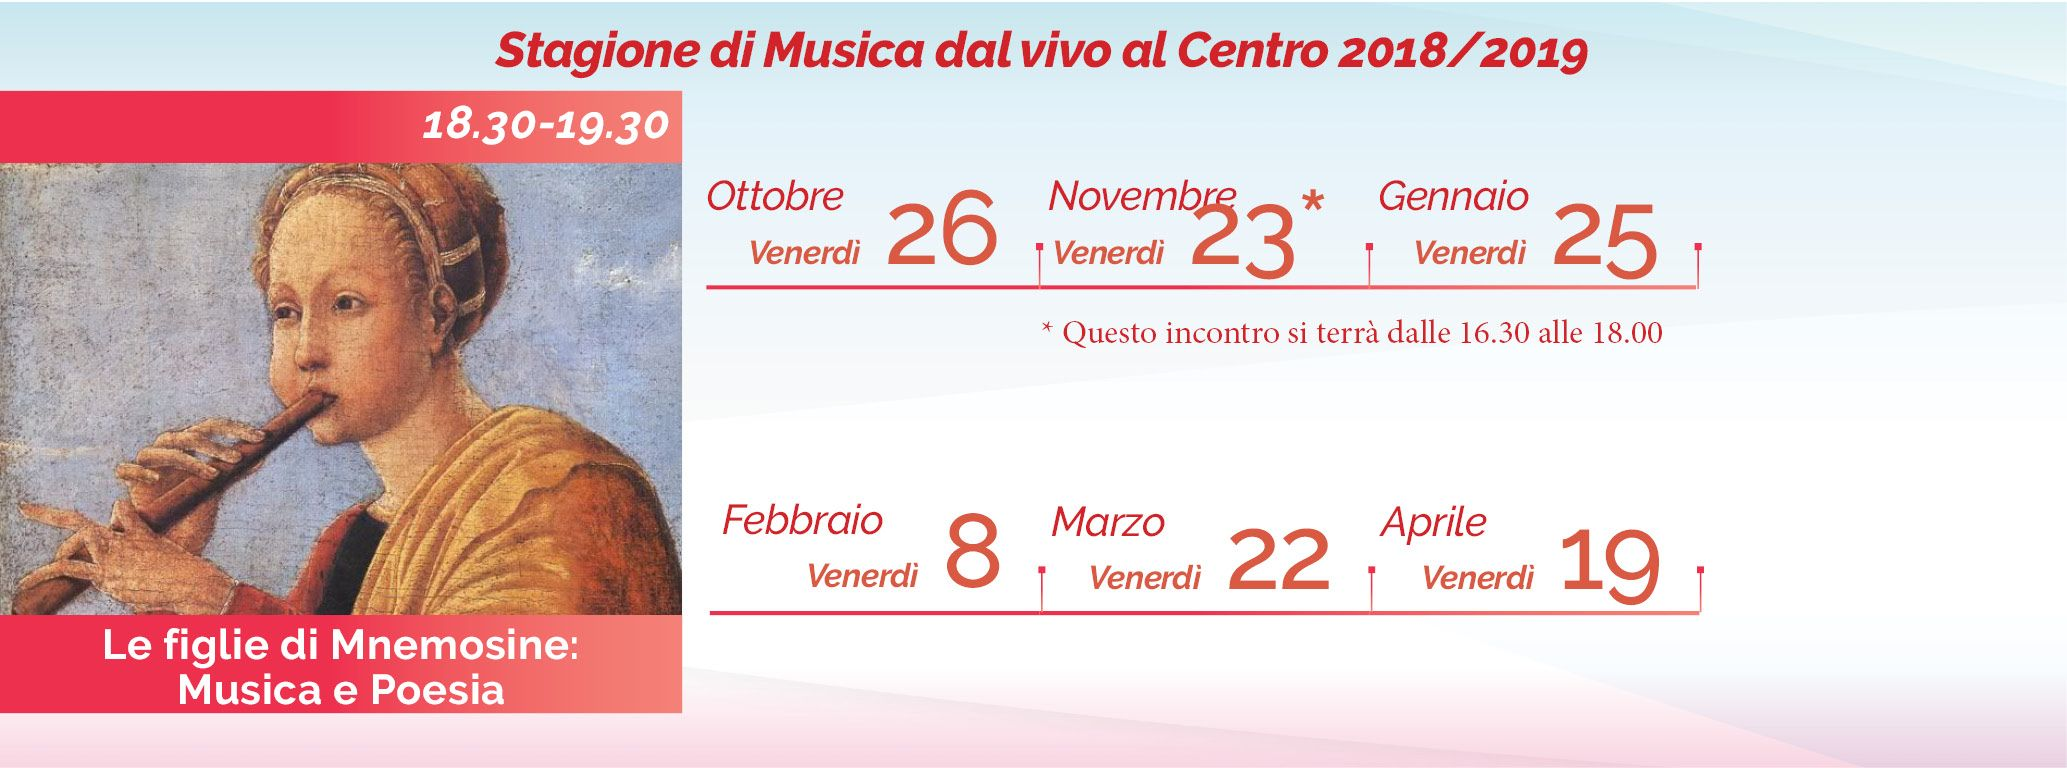 Il calendario 2018-2019 di Giovanna Fassino